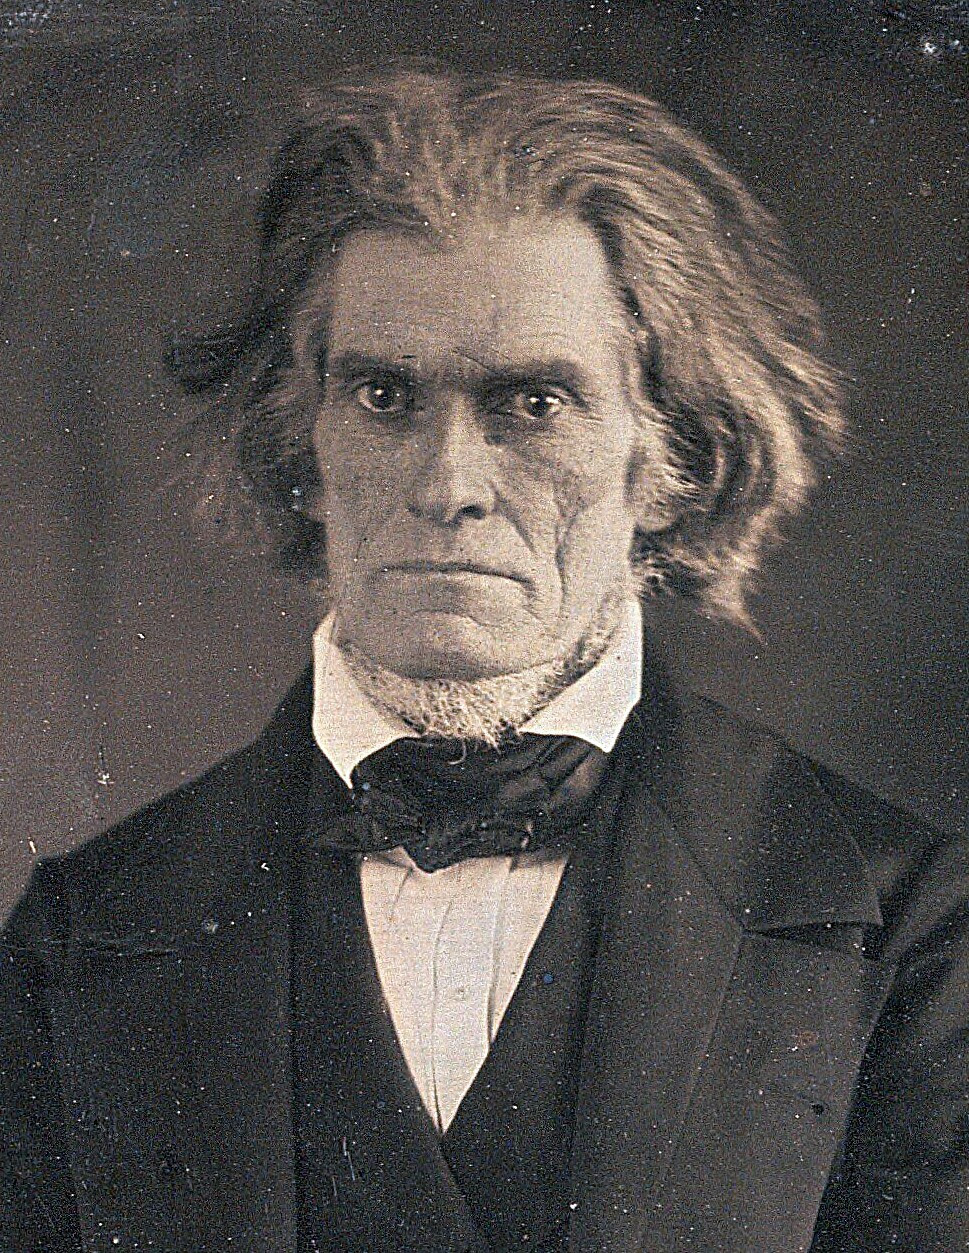 http://upload.wikimedia.org/wikipedia/commons/6/67/John_C_Calhoun_by_Mathew_Brady,_March_1849-crop.jpg